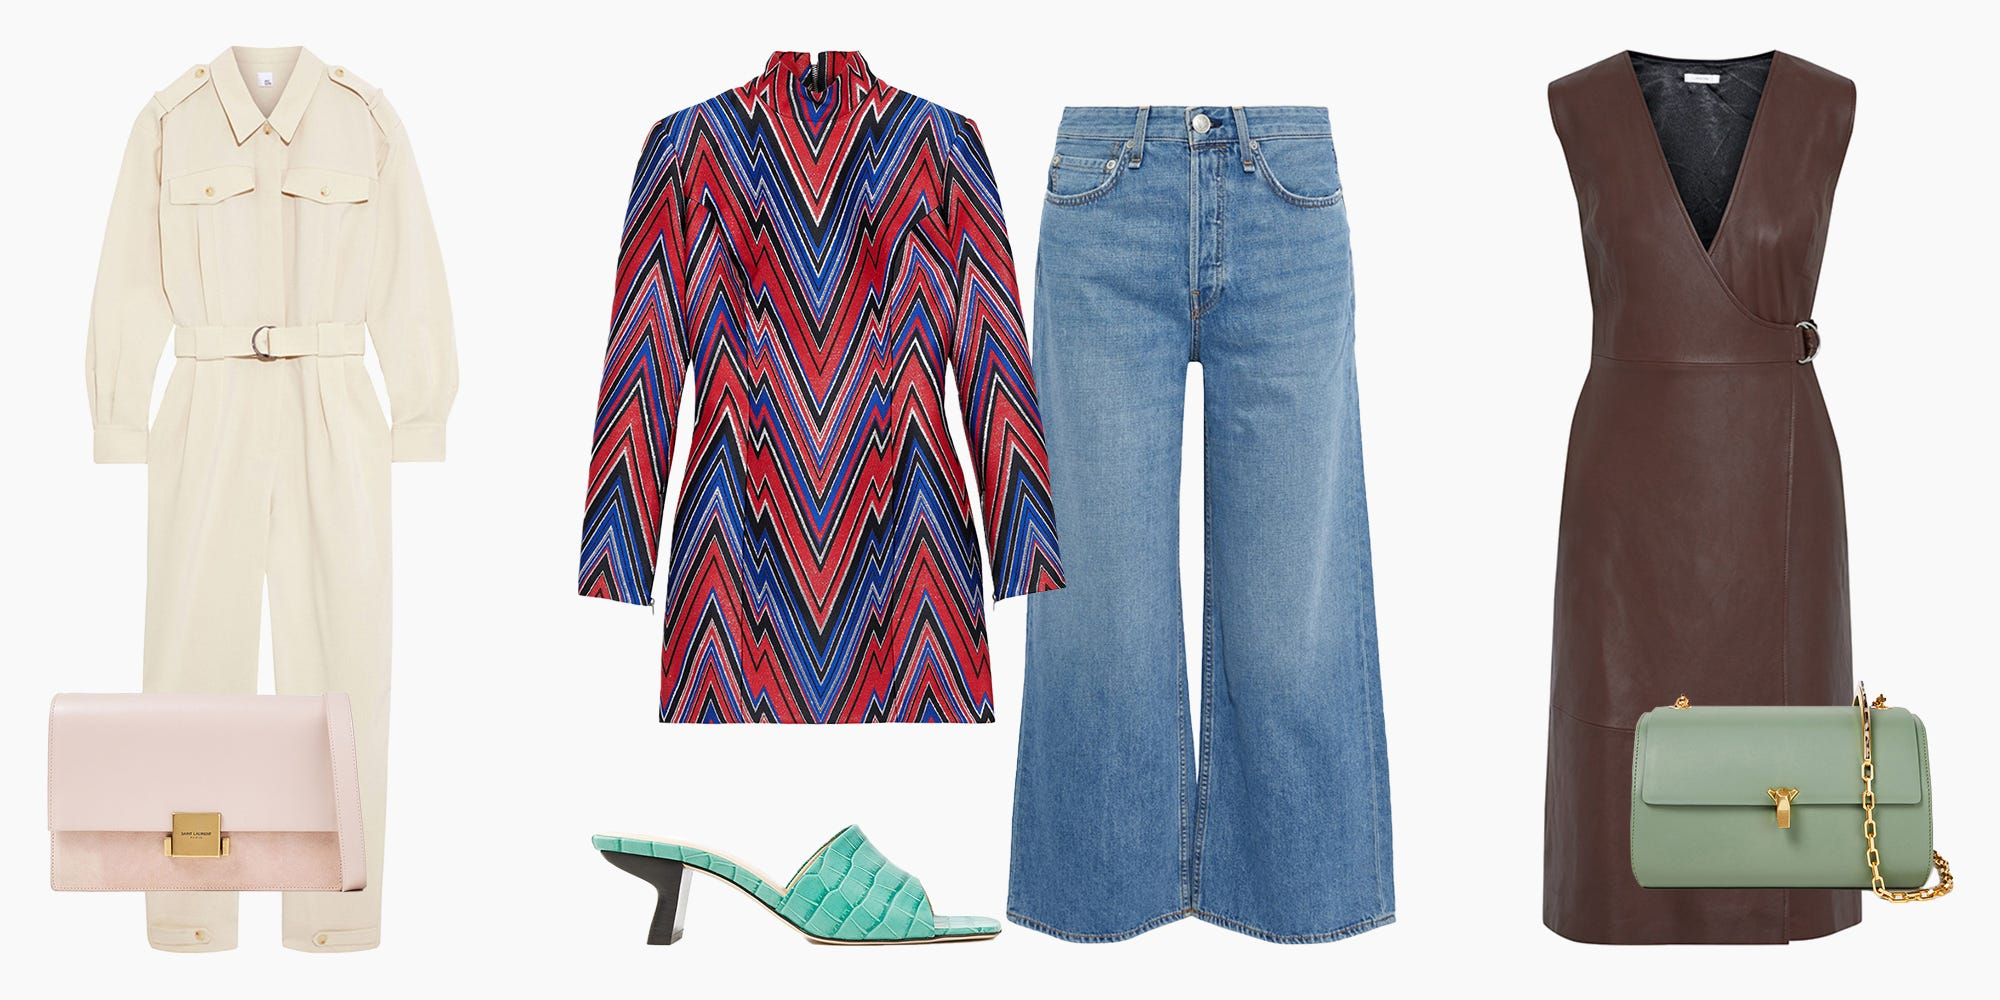 22 Best Finds from The Outnet's Spring Sale